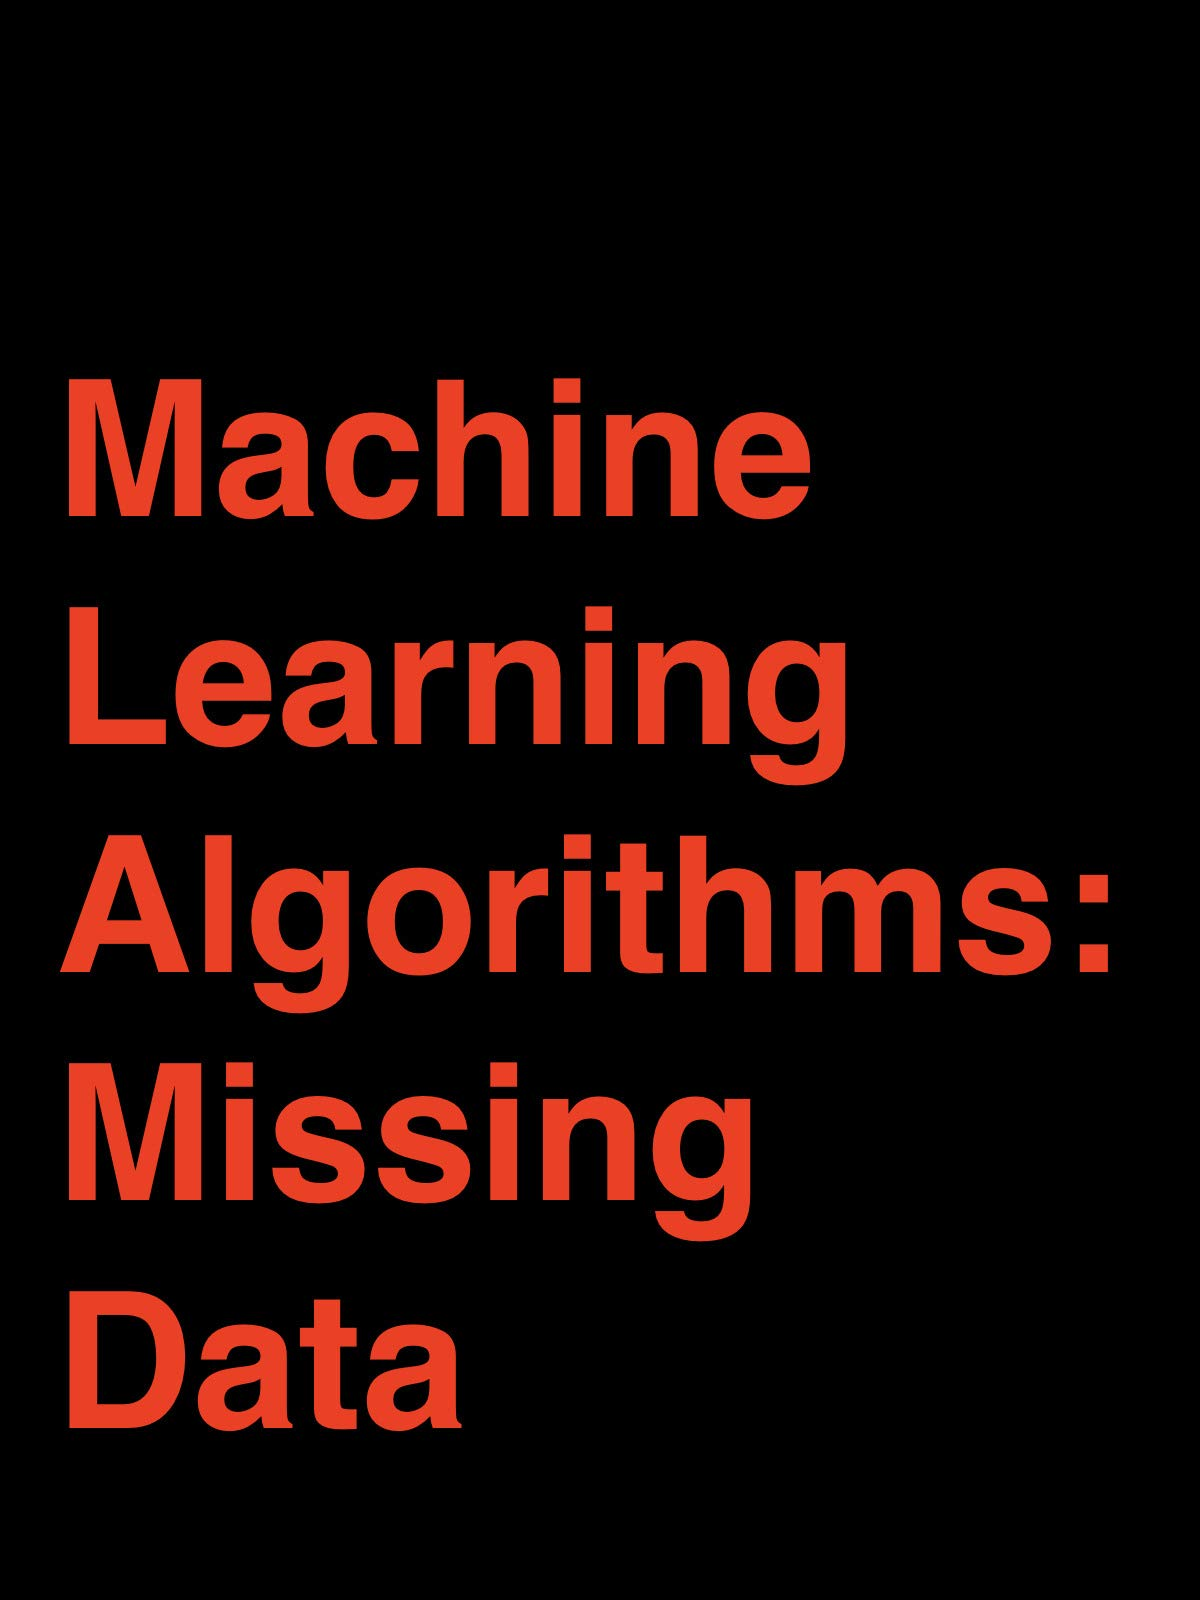 Machine Learning Algorithms: Missing Data